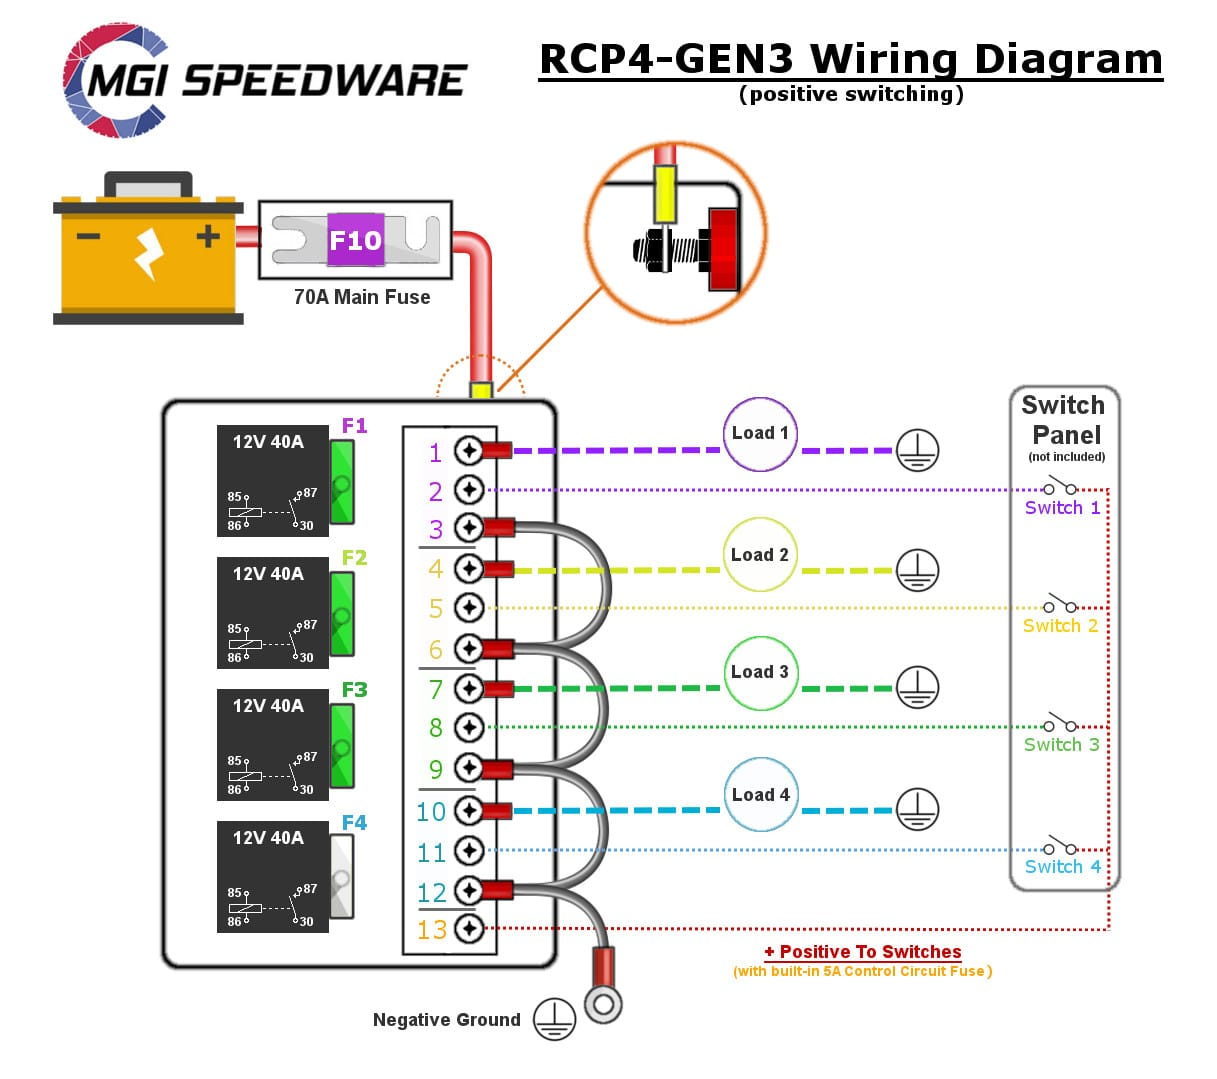 [DIAGRAM_38ZD]  Automotive Relay Panels — Choose 3, 4, 6, or 8 Relays | MGI SpeedWare | 12 Relay Wiring Diagram |  | MGI SpeedWare